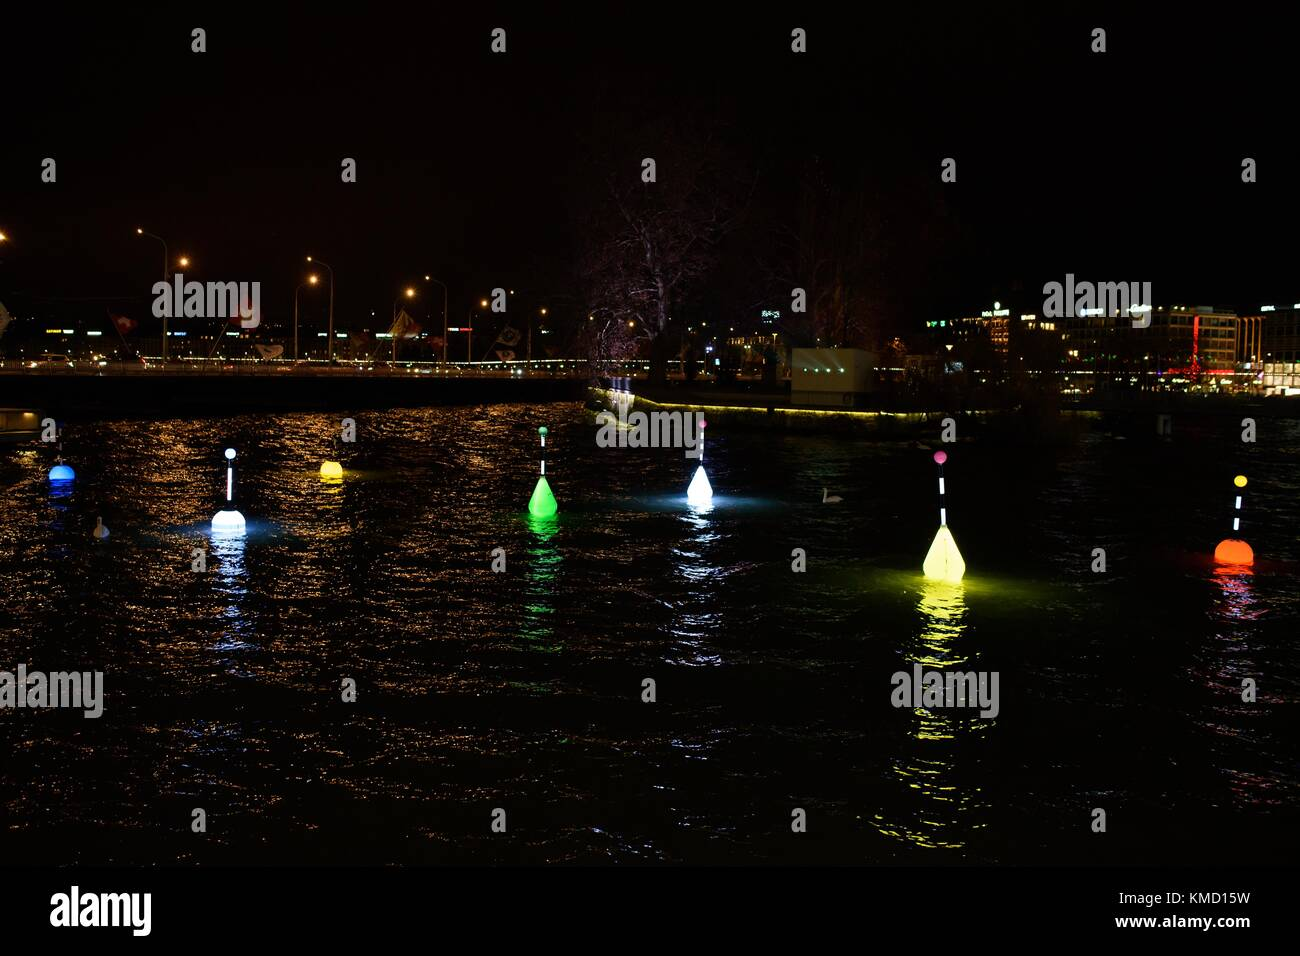 Les Flotteuses for 4th edition Geneva Lux from Stéphane Durand. Colorful floats in the Lake of Geneva. - Stock Image